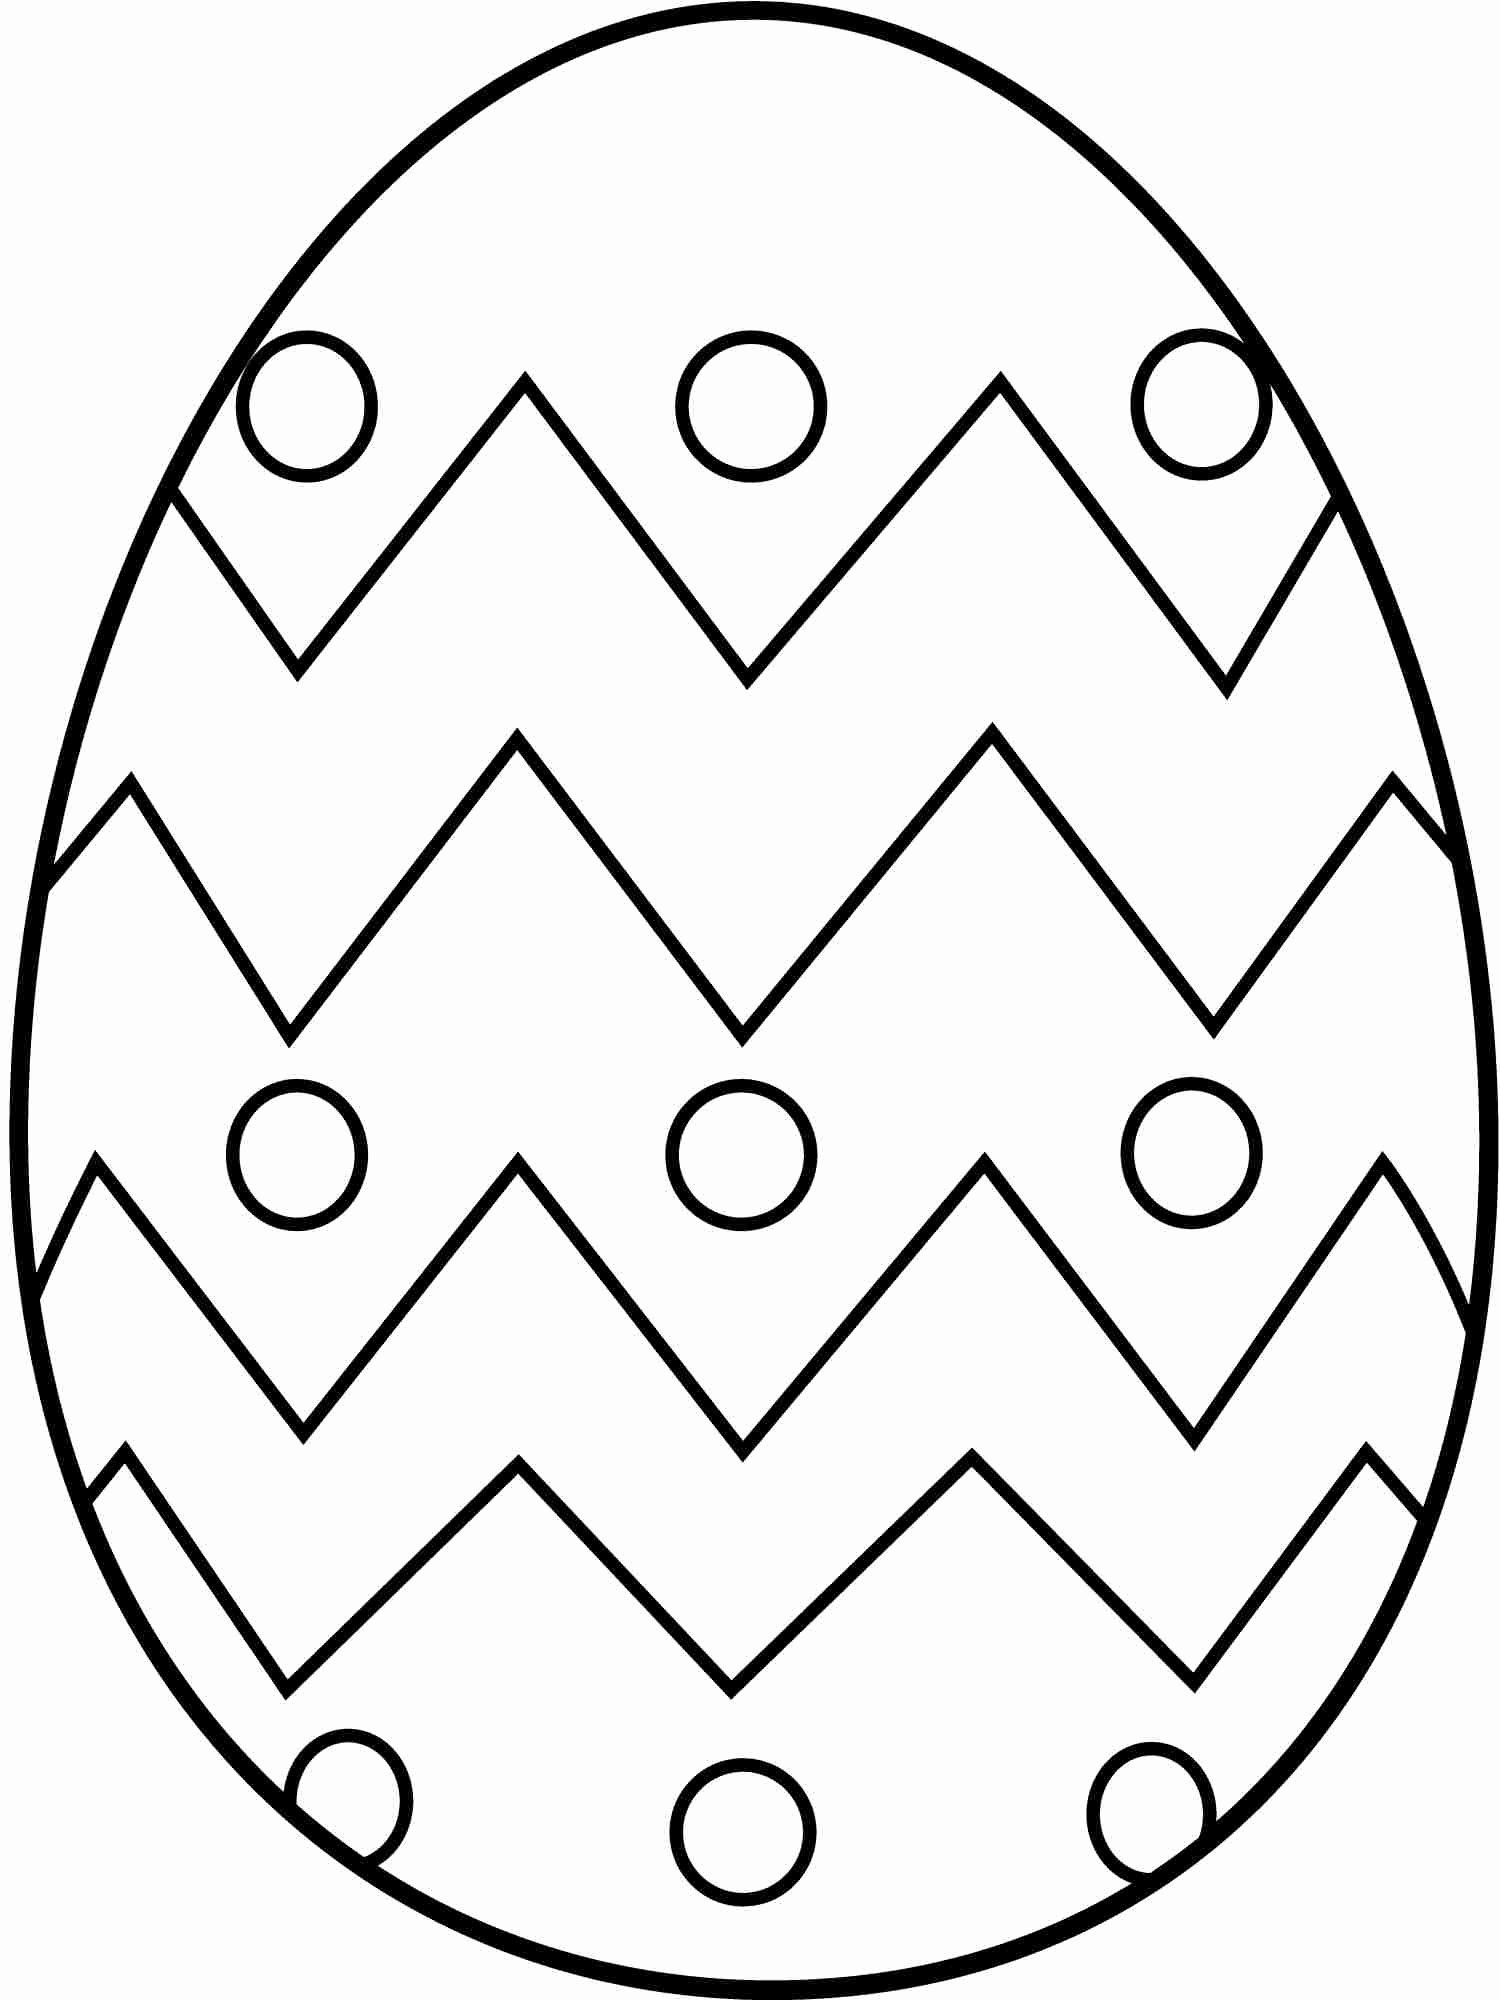 Free Easter Basket Coloring Pages In 2020 Easter Coloring Pages